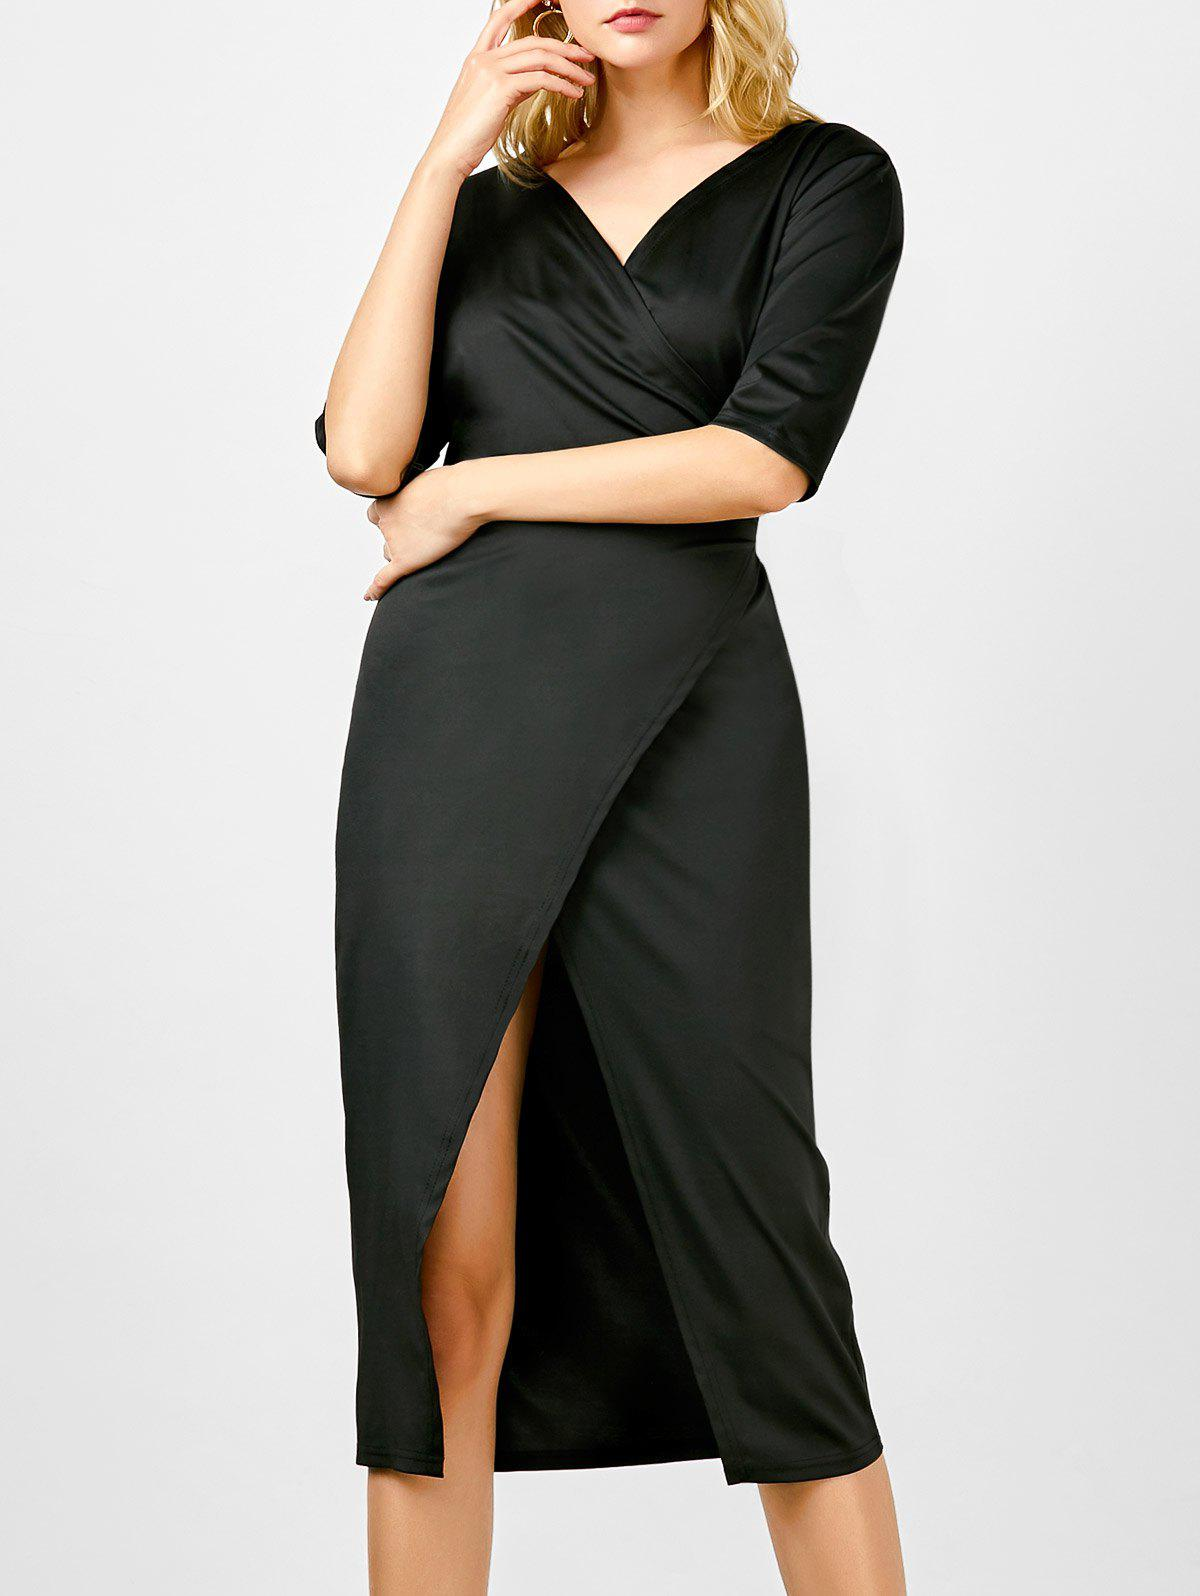 Store Half Sleeve Plunging Neck Wrap Fitted Dress